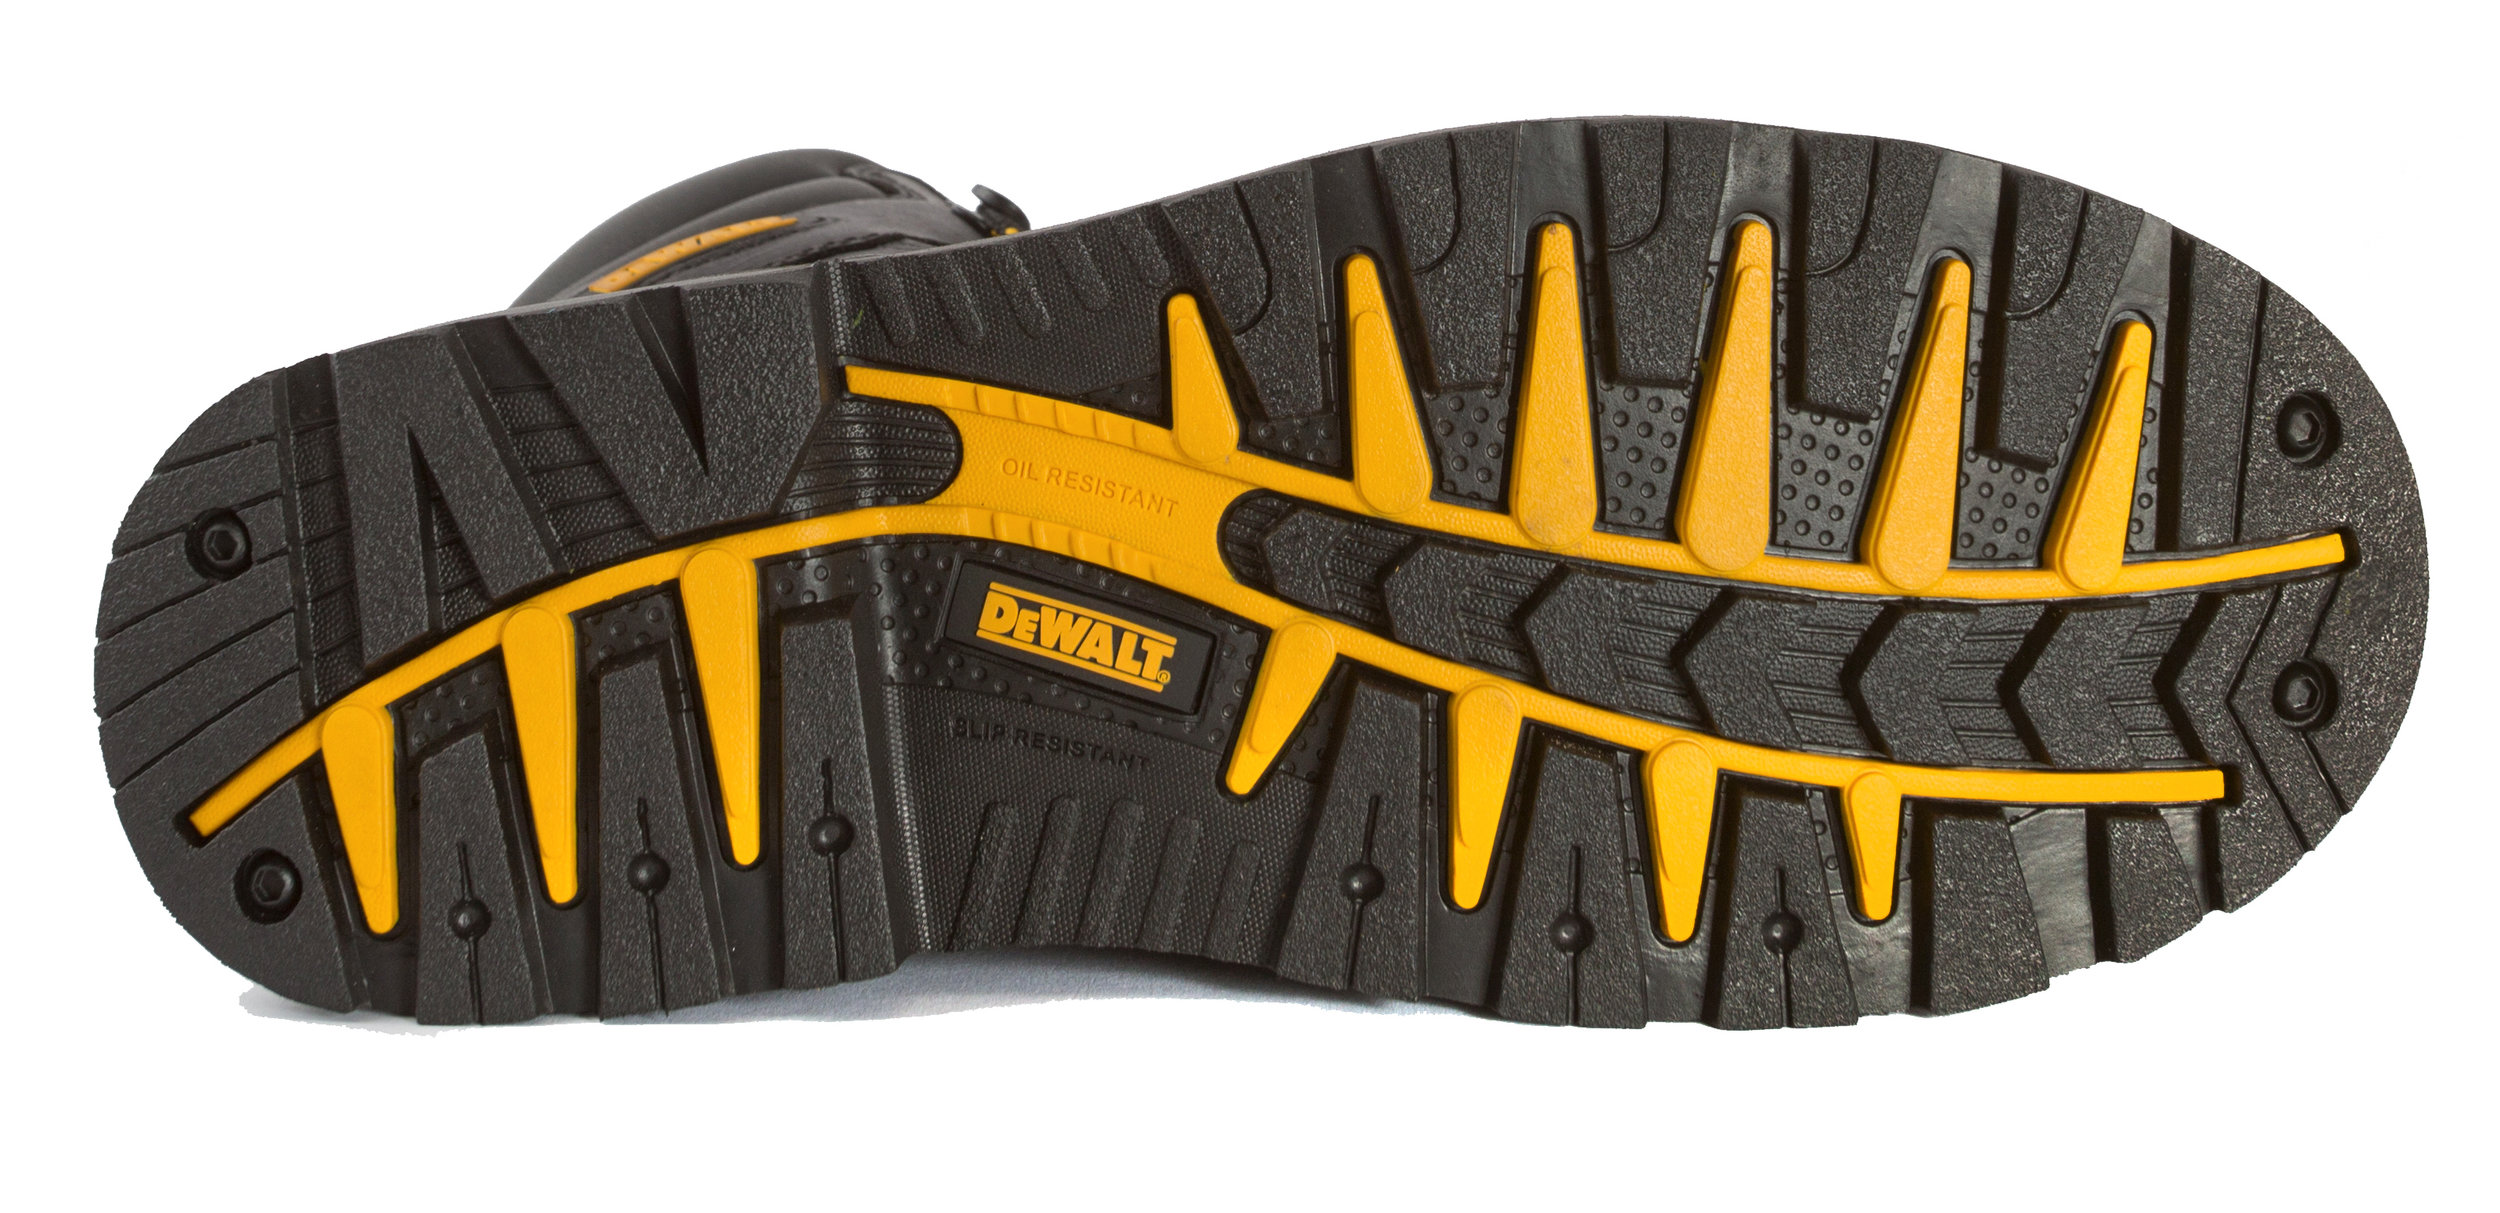 Brian Hunt - of Dewalt Industrial FootwearWe used Kendell to photograph some of our footwear for our online store. She was quick with responding on email, enthusiastic about the job, and the turn around time for photographs was excellent. She shot various angles on a white backdrop and showcased the product very well. We highly recommend her for your product photography needs.